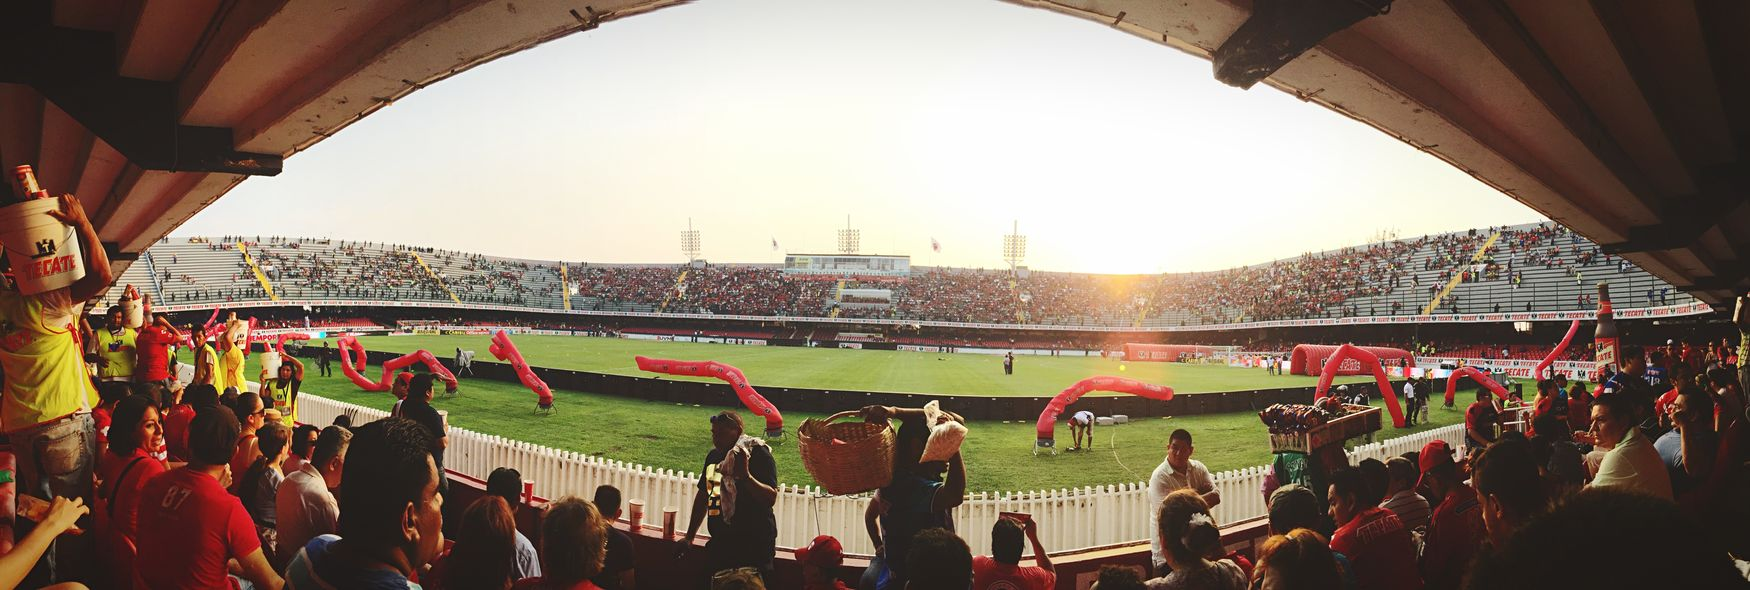 Veracruz Estadio TiburonesRojos Futbol Soccer Panoramic Photography IPhoneography Friday